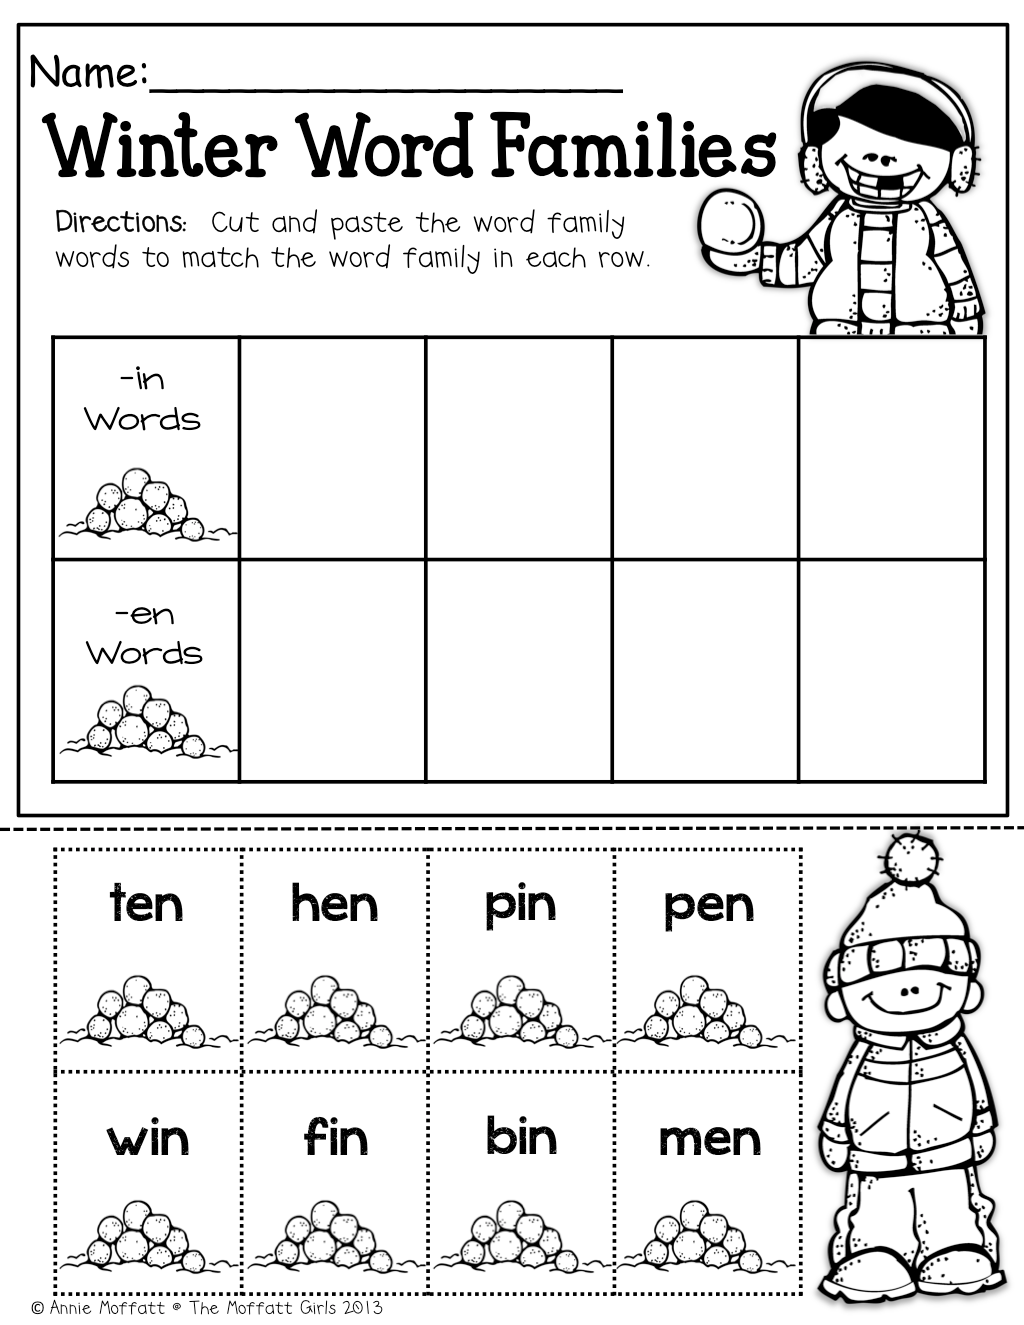 Winter Word Families Great Way To Practice Simple Cvc Words Cut And Paste